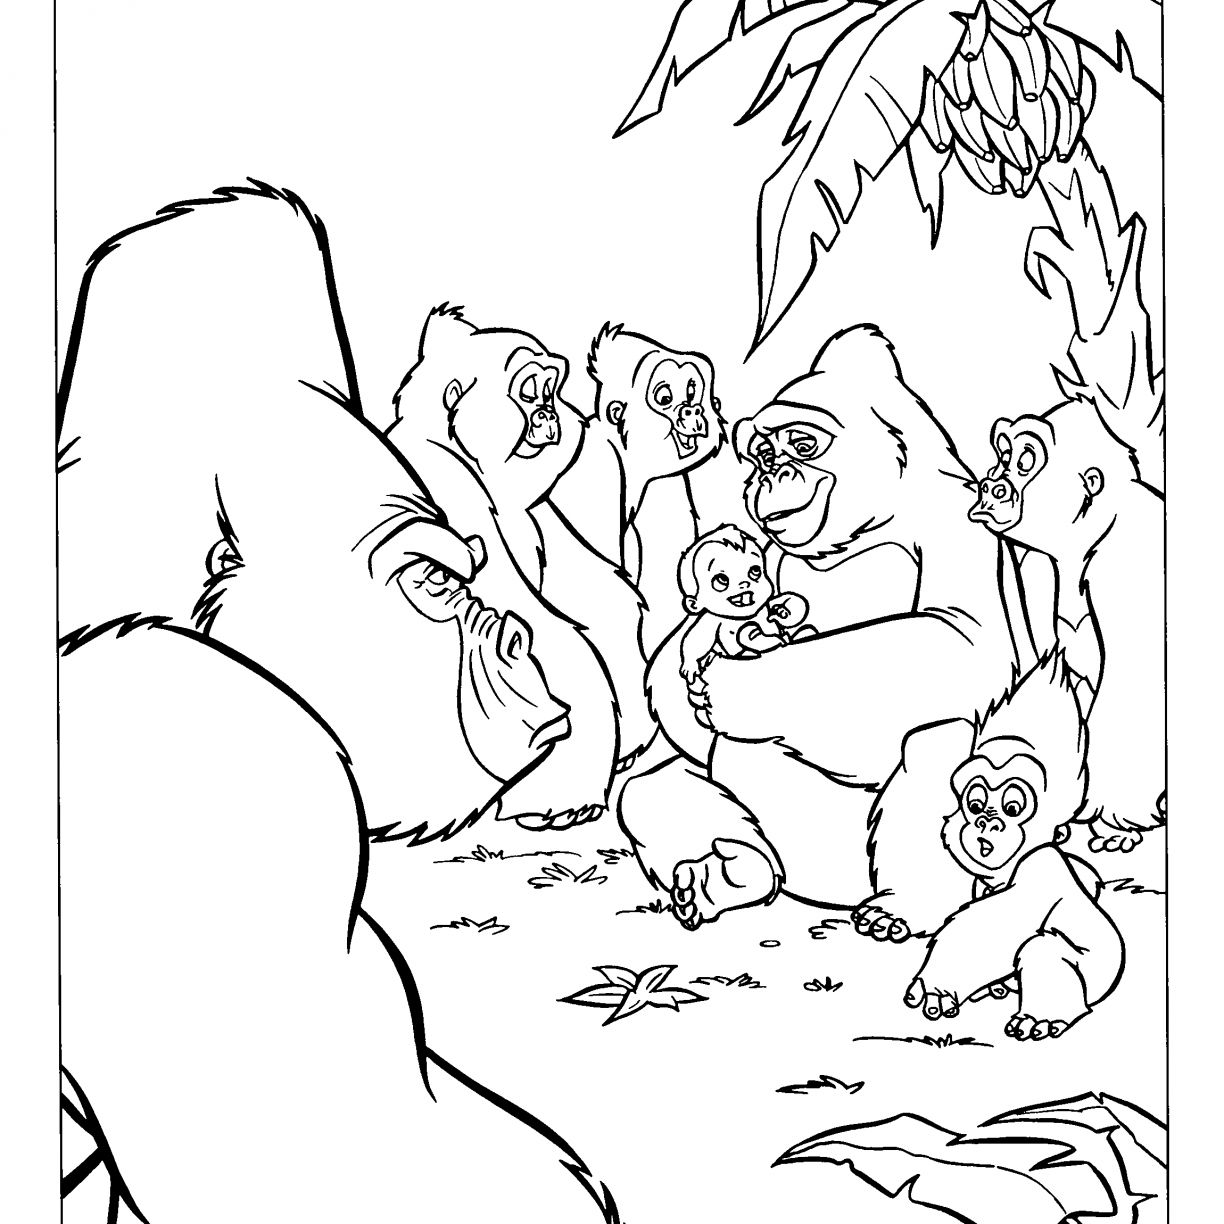 Baby Gorilla Coloring Pages at GetDrawings | Free download